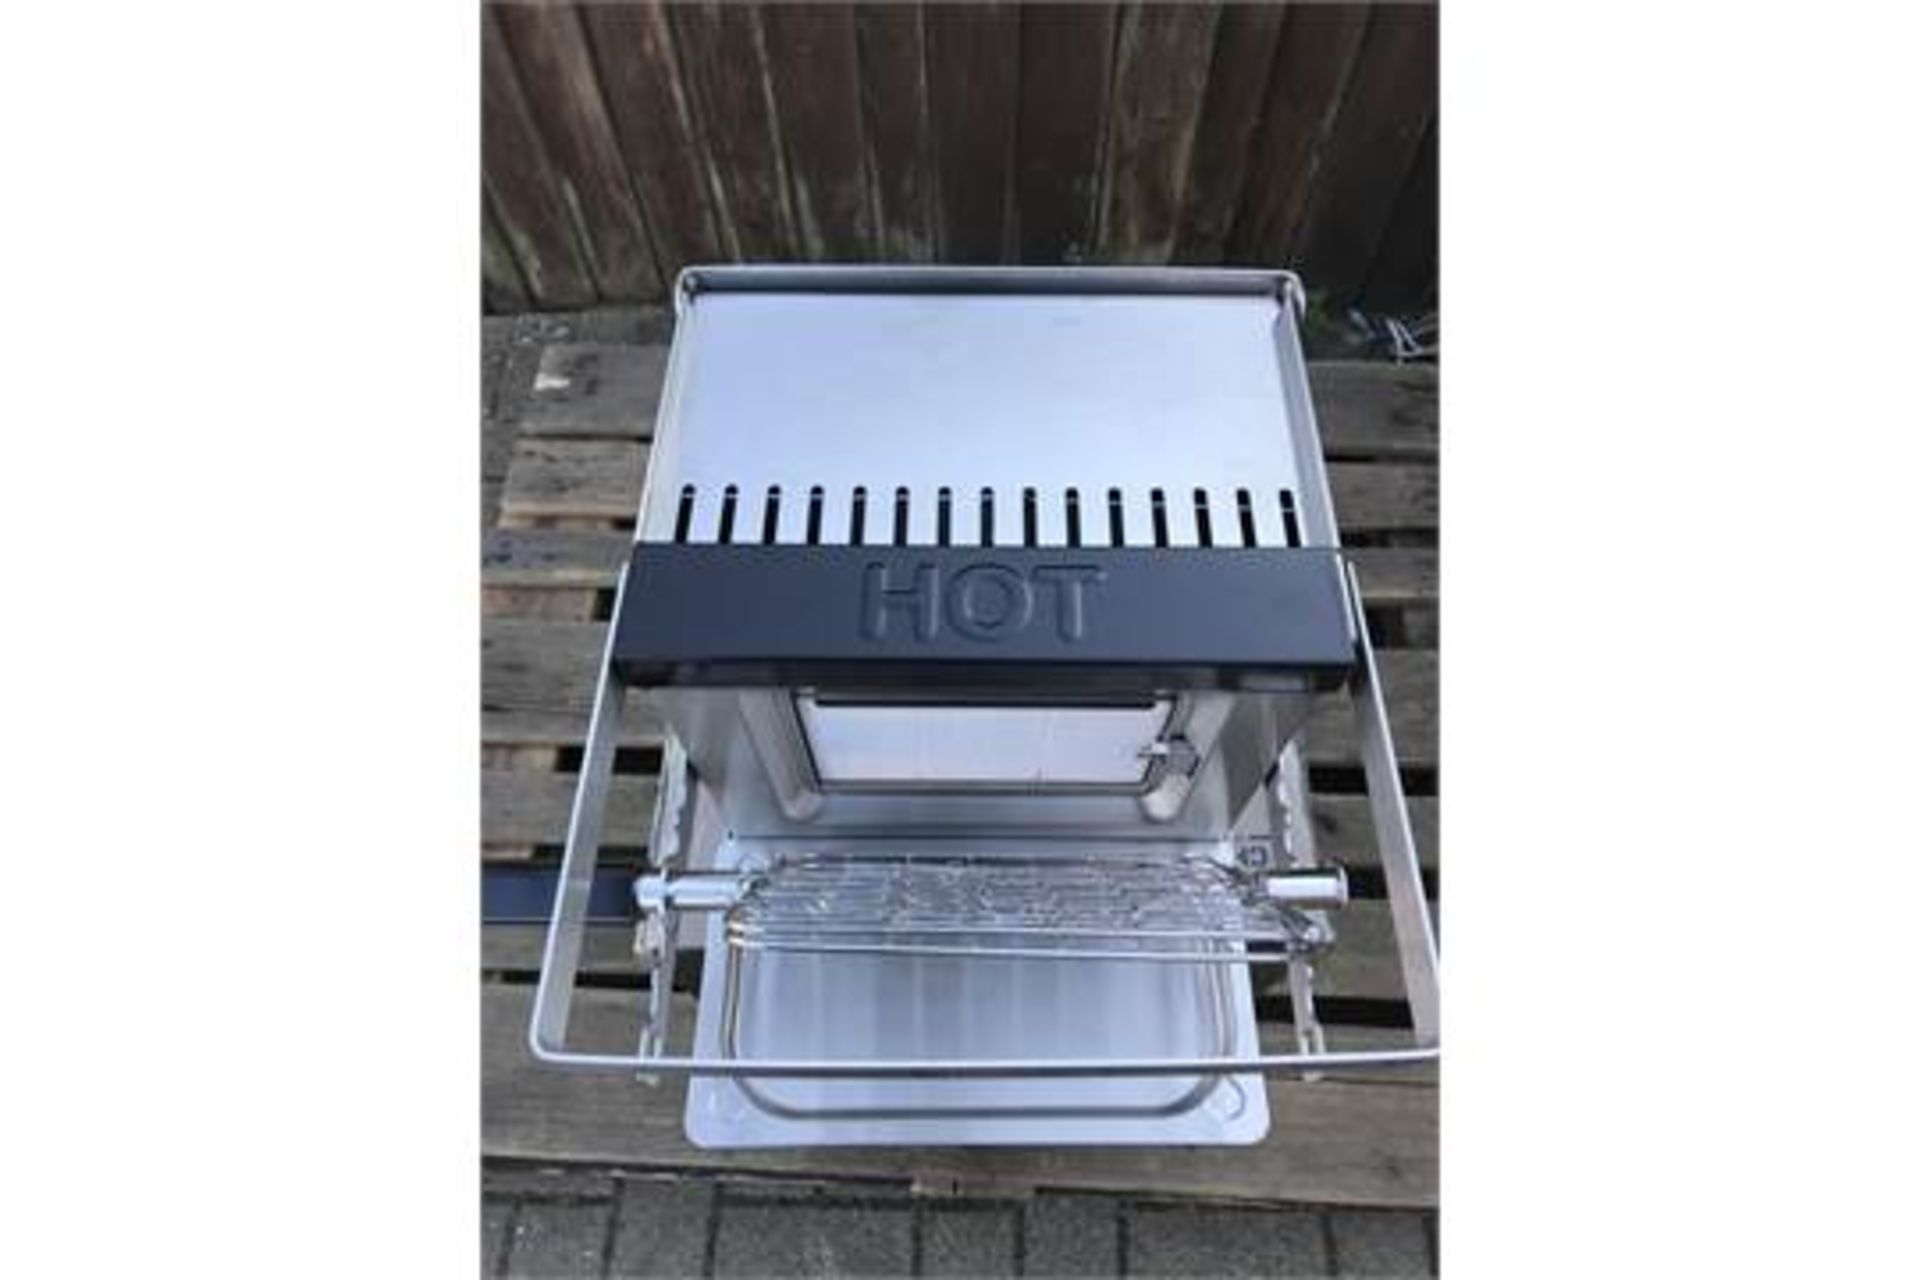 GOLD CHEF TWO 800C ROTISSERIE GRILL **BRAND NEW** - Image 3 of 5